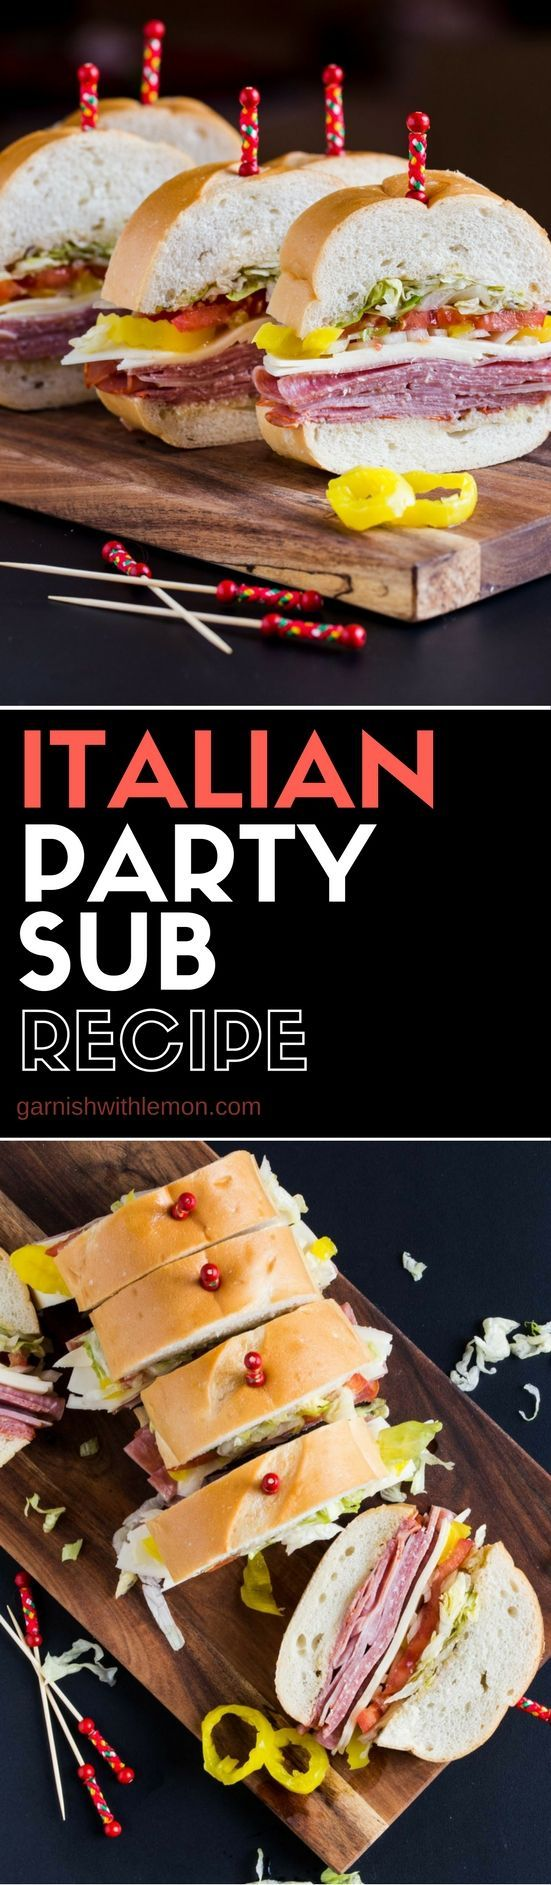 This easy Italian Party Sub recipe is perfect football food. Add it to your menu today!